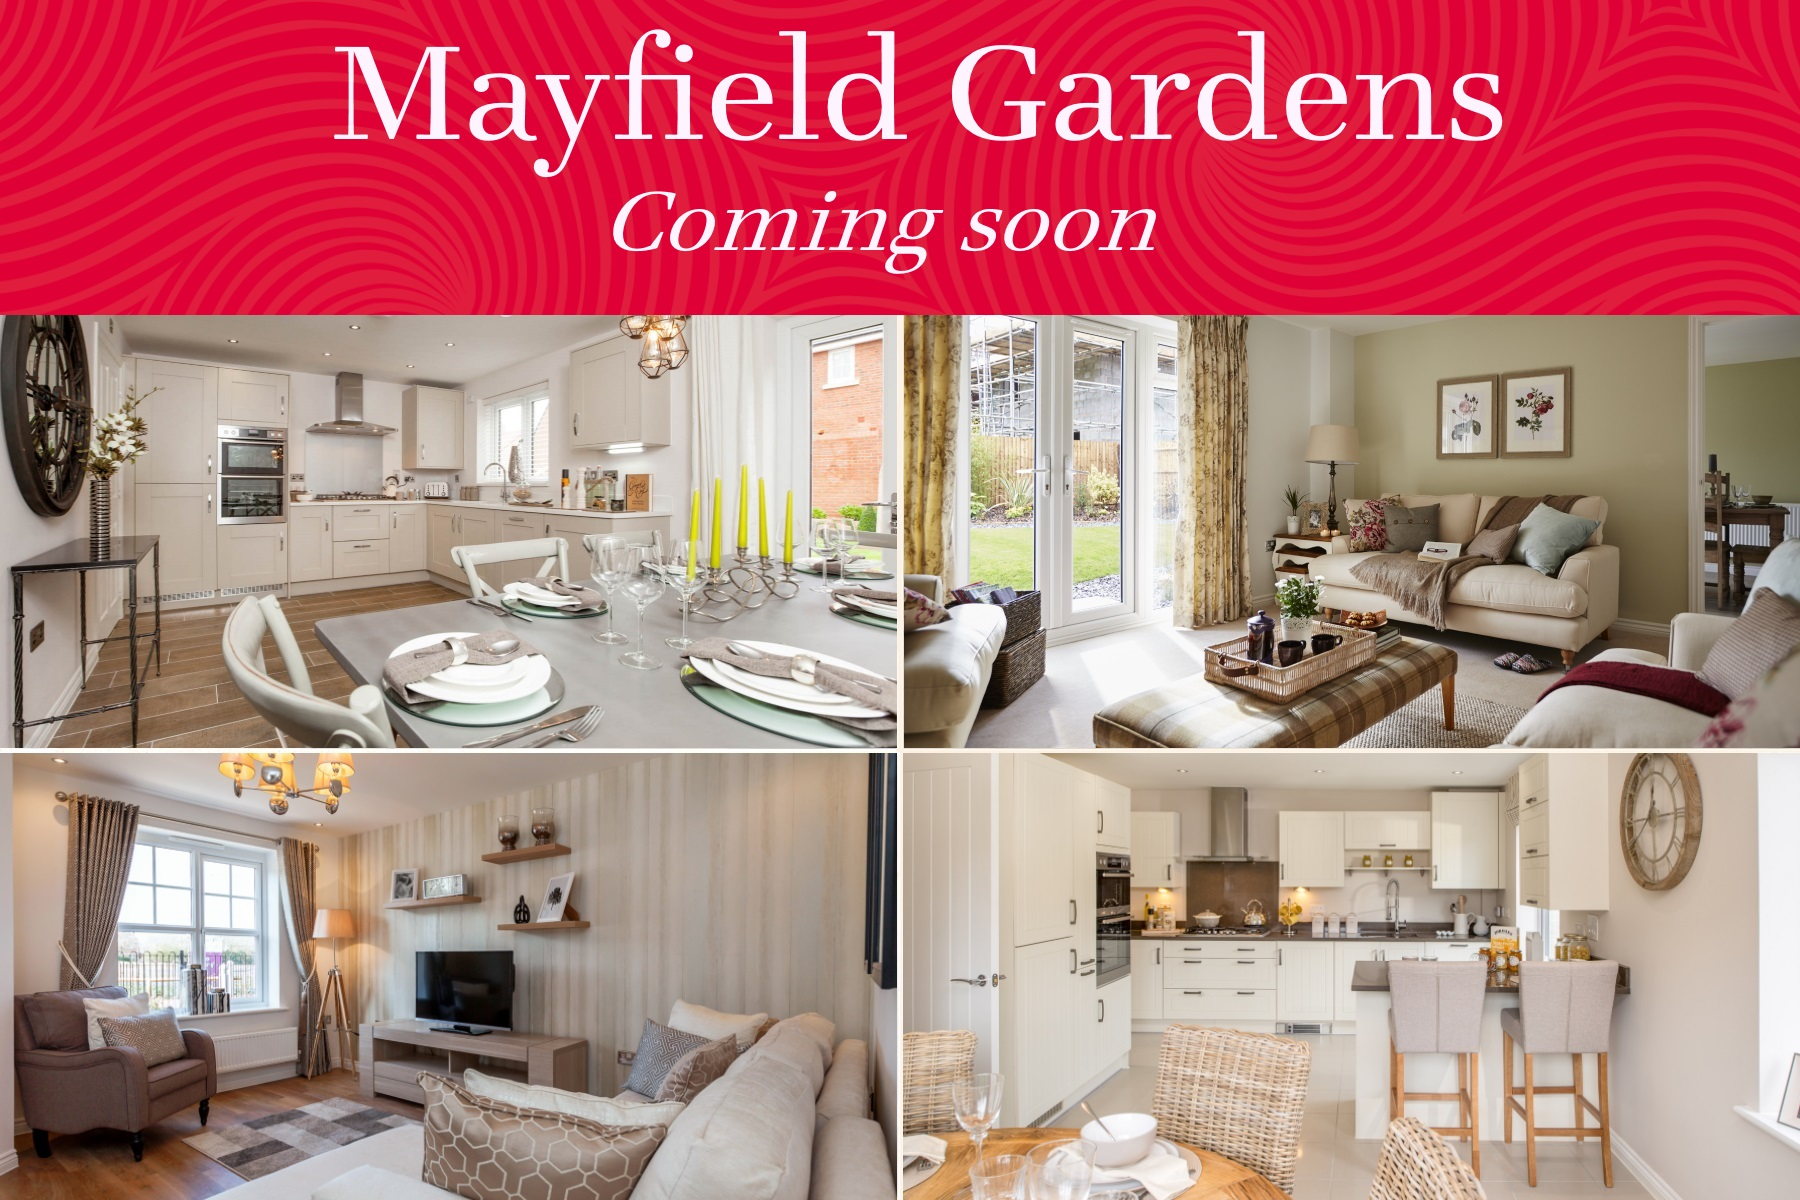 Mayfield Gardens - coming soon